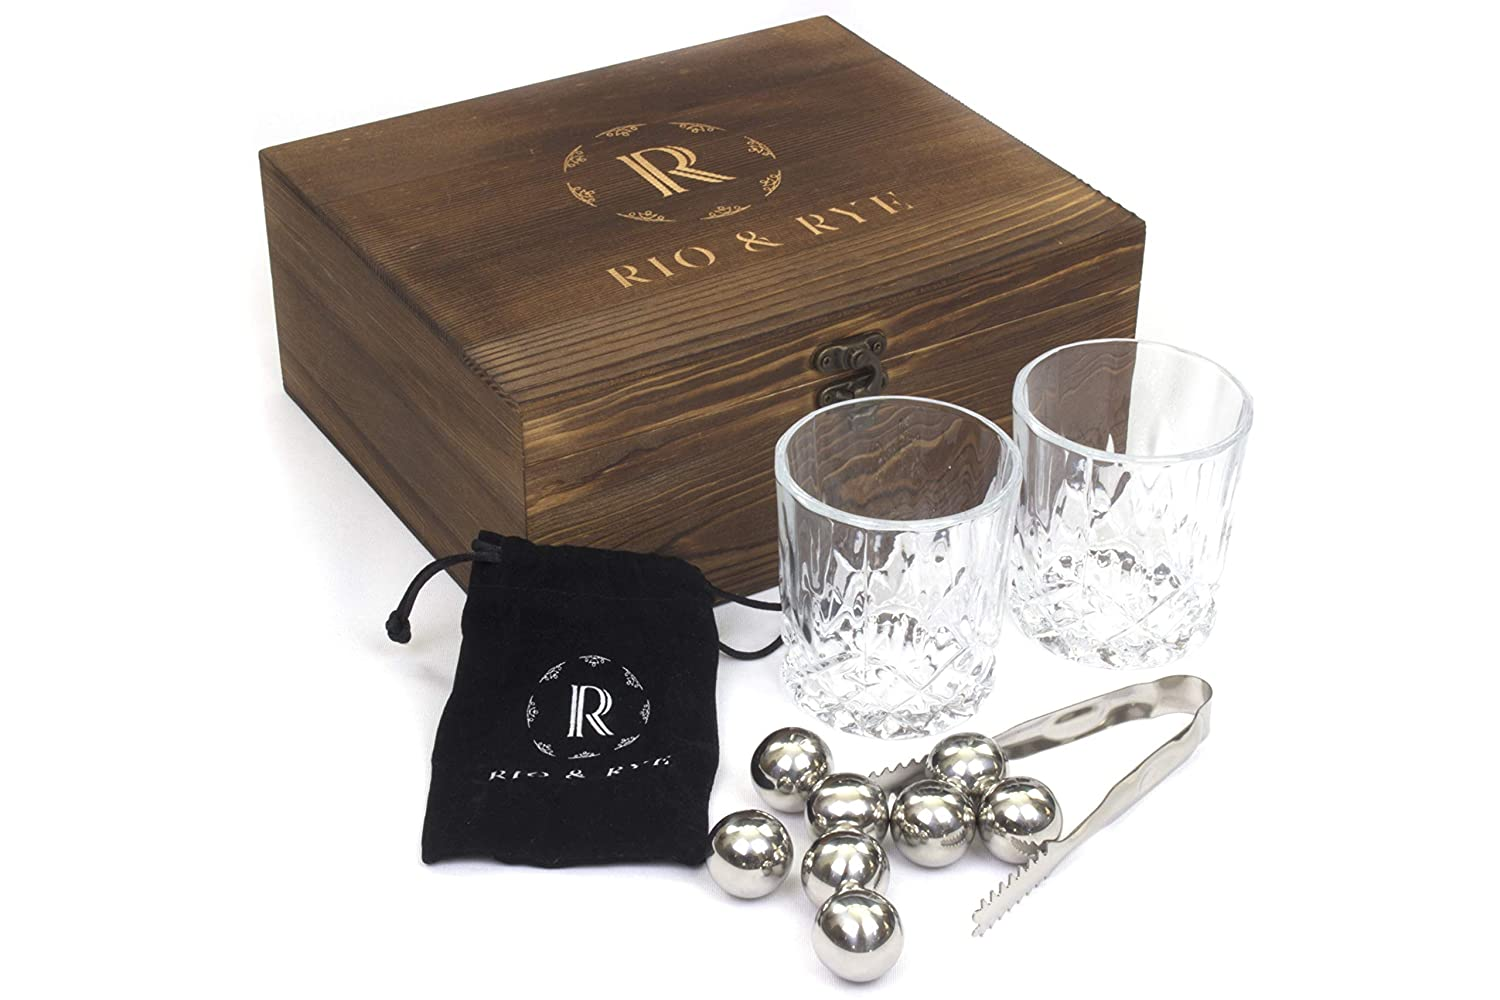 Whiskey Glasses and Stones Gift Set - 2 Large Crystal Whiskey Glasses, 8 Cooling Whiskey Stones, Velvet Bag and Tongs in Handcrafted Wooden Box Rio & Rye